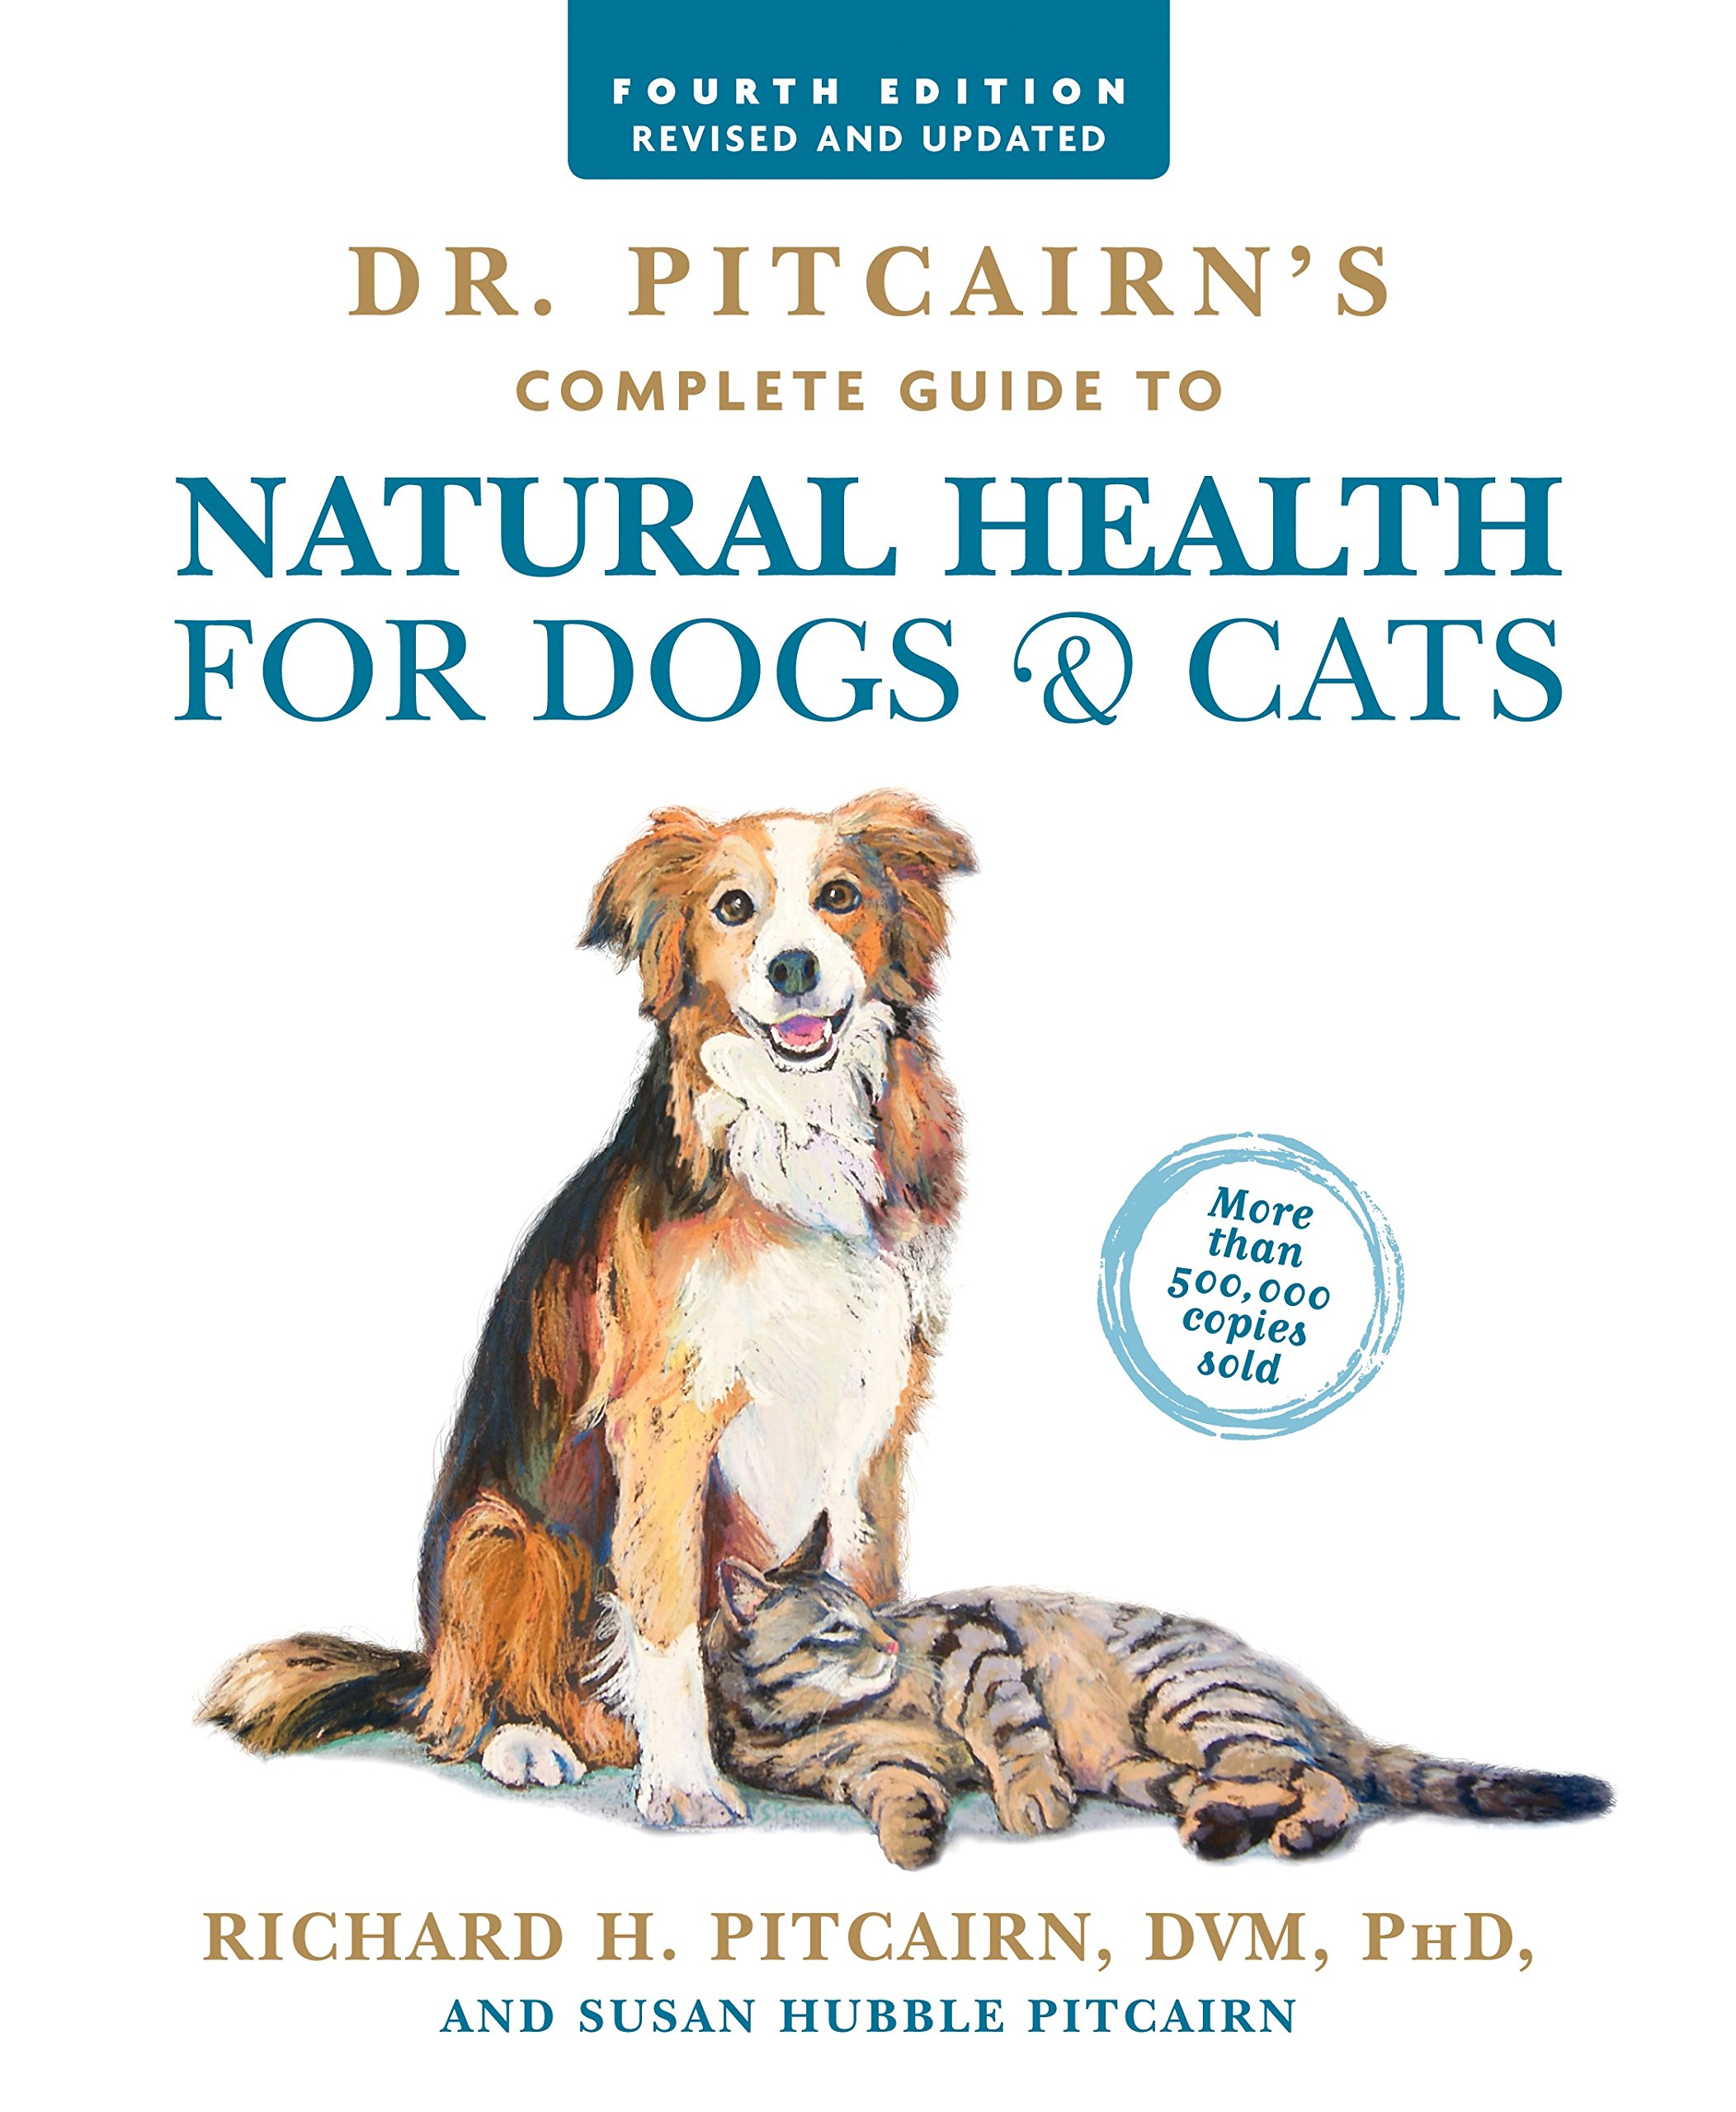 Dr. Pitcairn's Complete Guide to Natural Health for Dogs & Cats (4th Edition) by Rodale Books (Image #2)